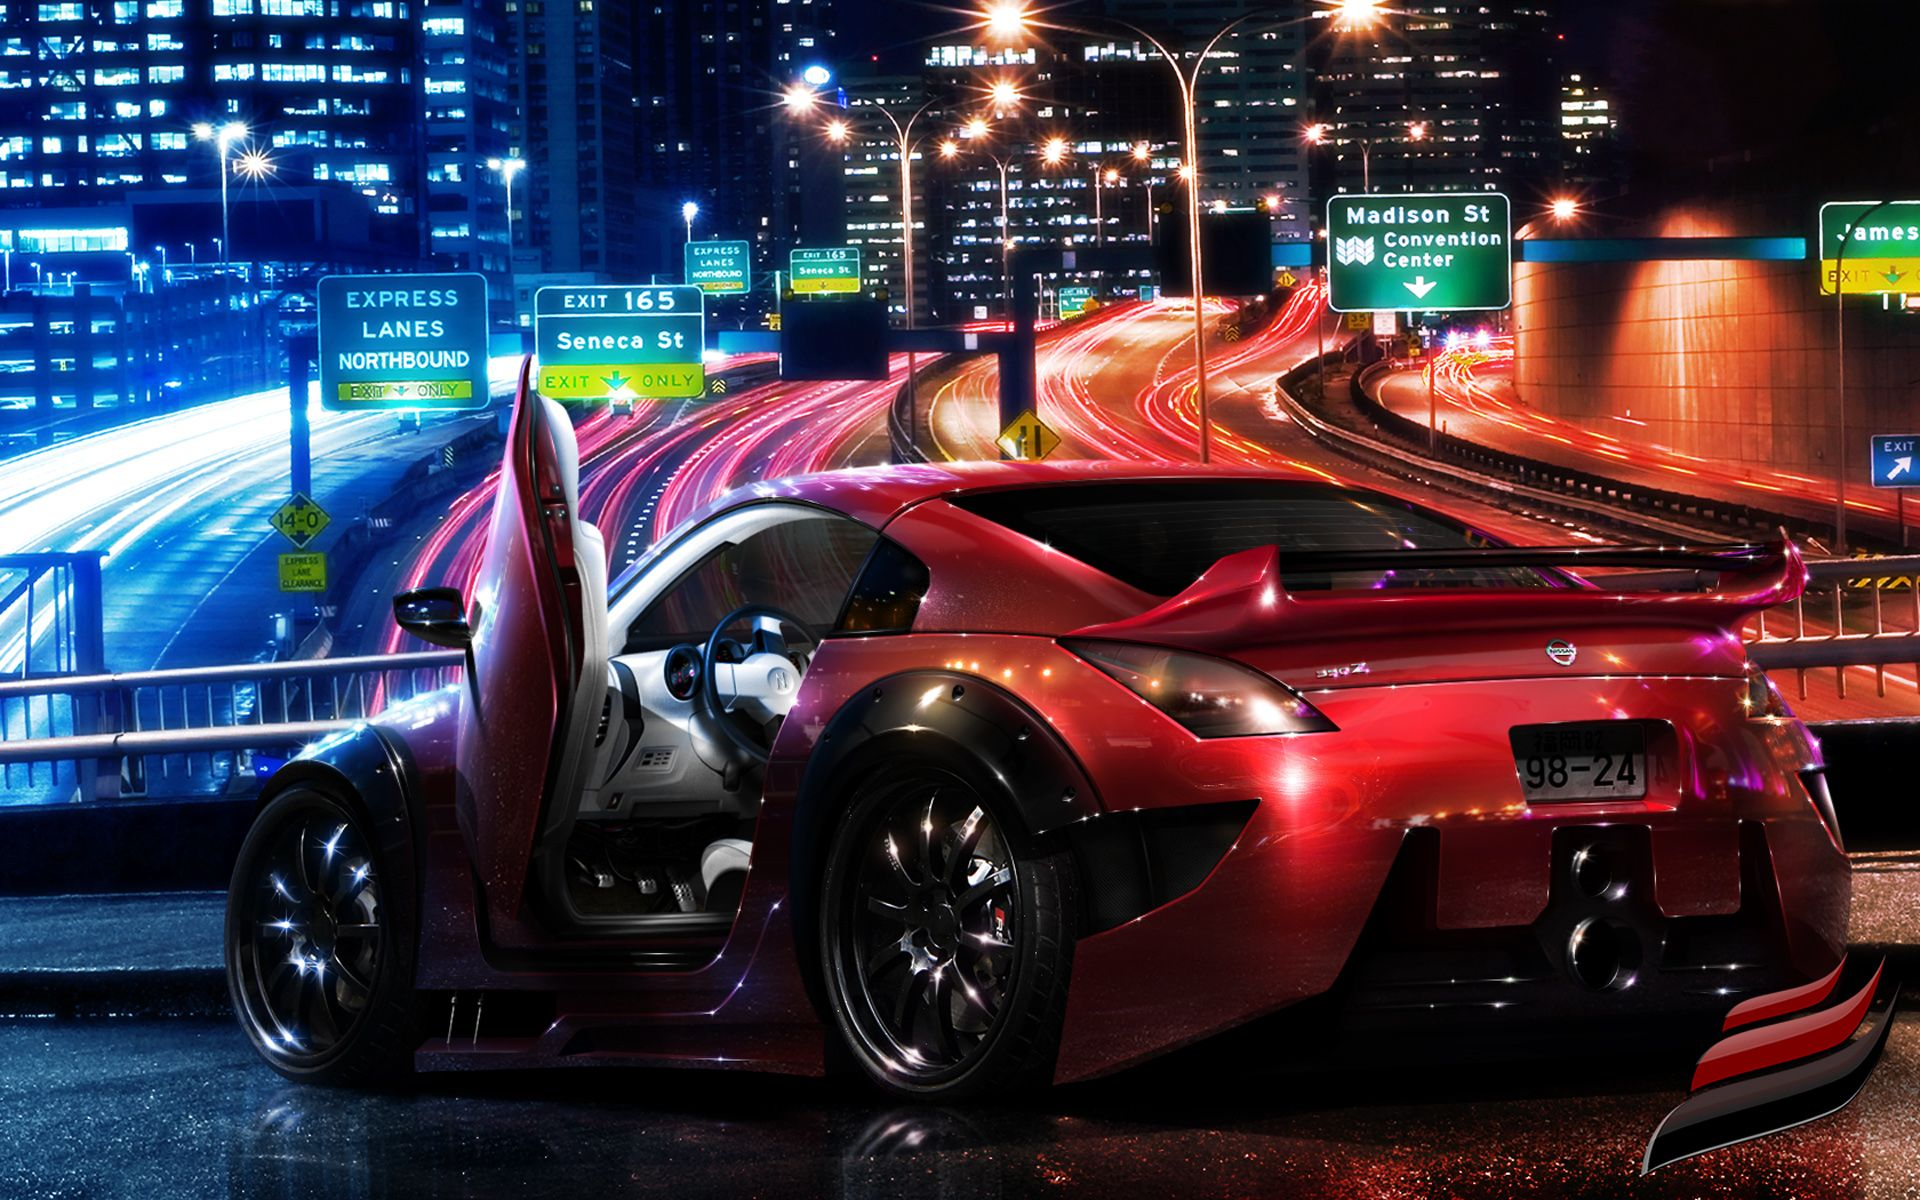 Cars Hd Wallpapers Http Whatstrendingonline Com Cars Hd